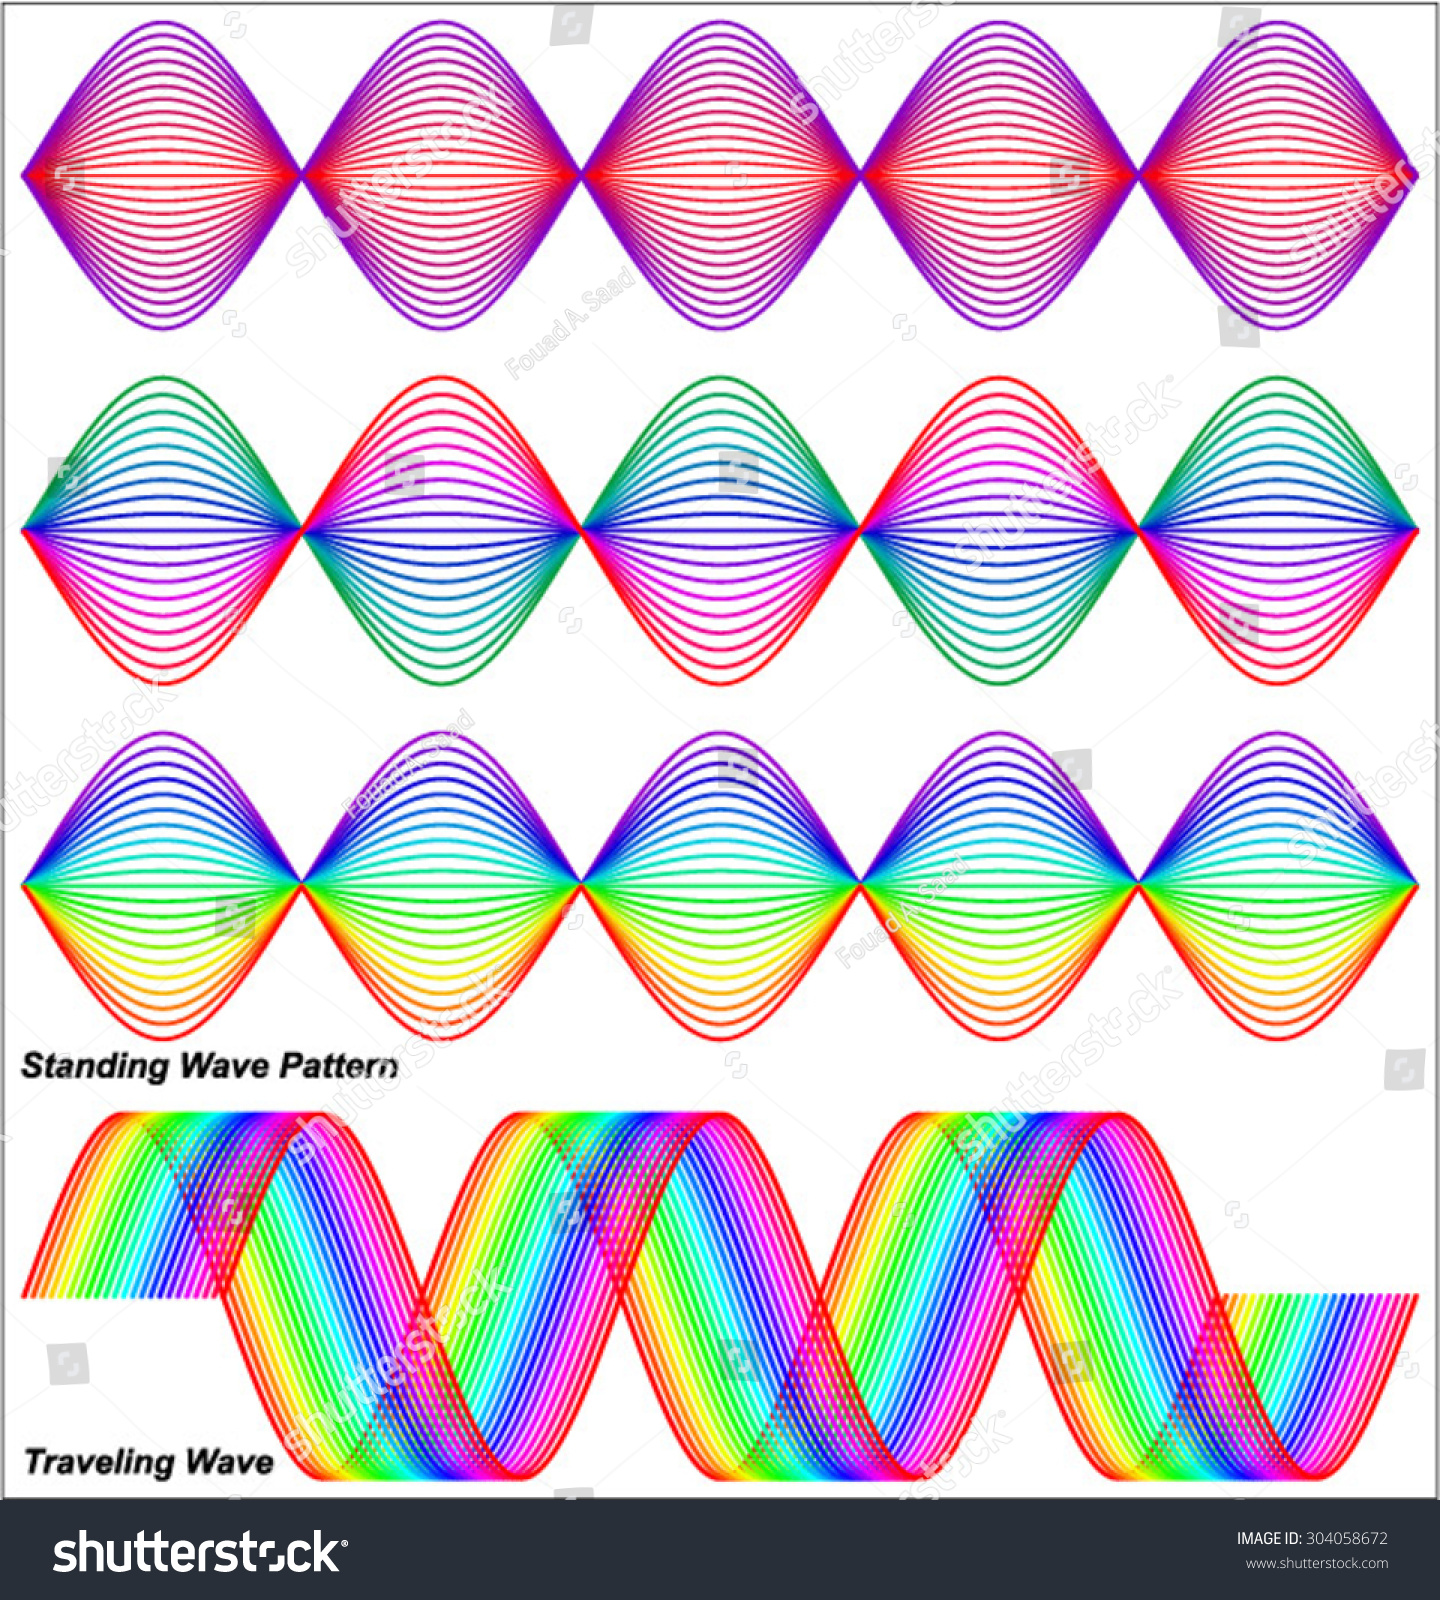 Standing Wave Pattern Awesome Ideas